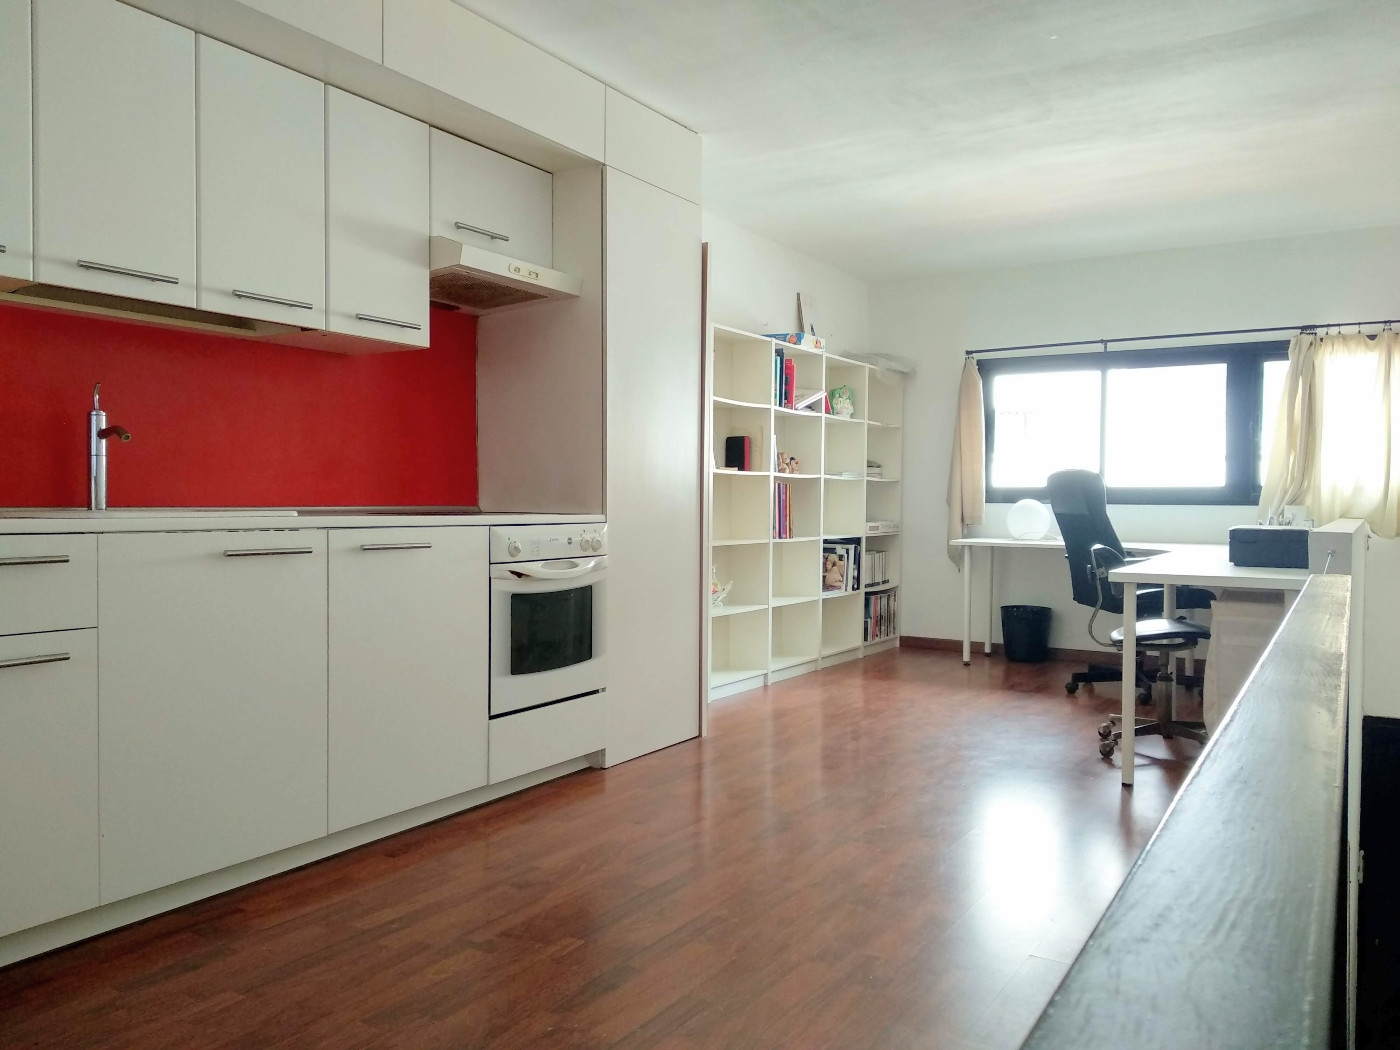 Apartment in Barcelona - ciutat vella. Terrace.1 bedrooms. For sale: 179.000 €.